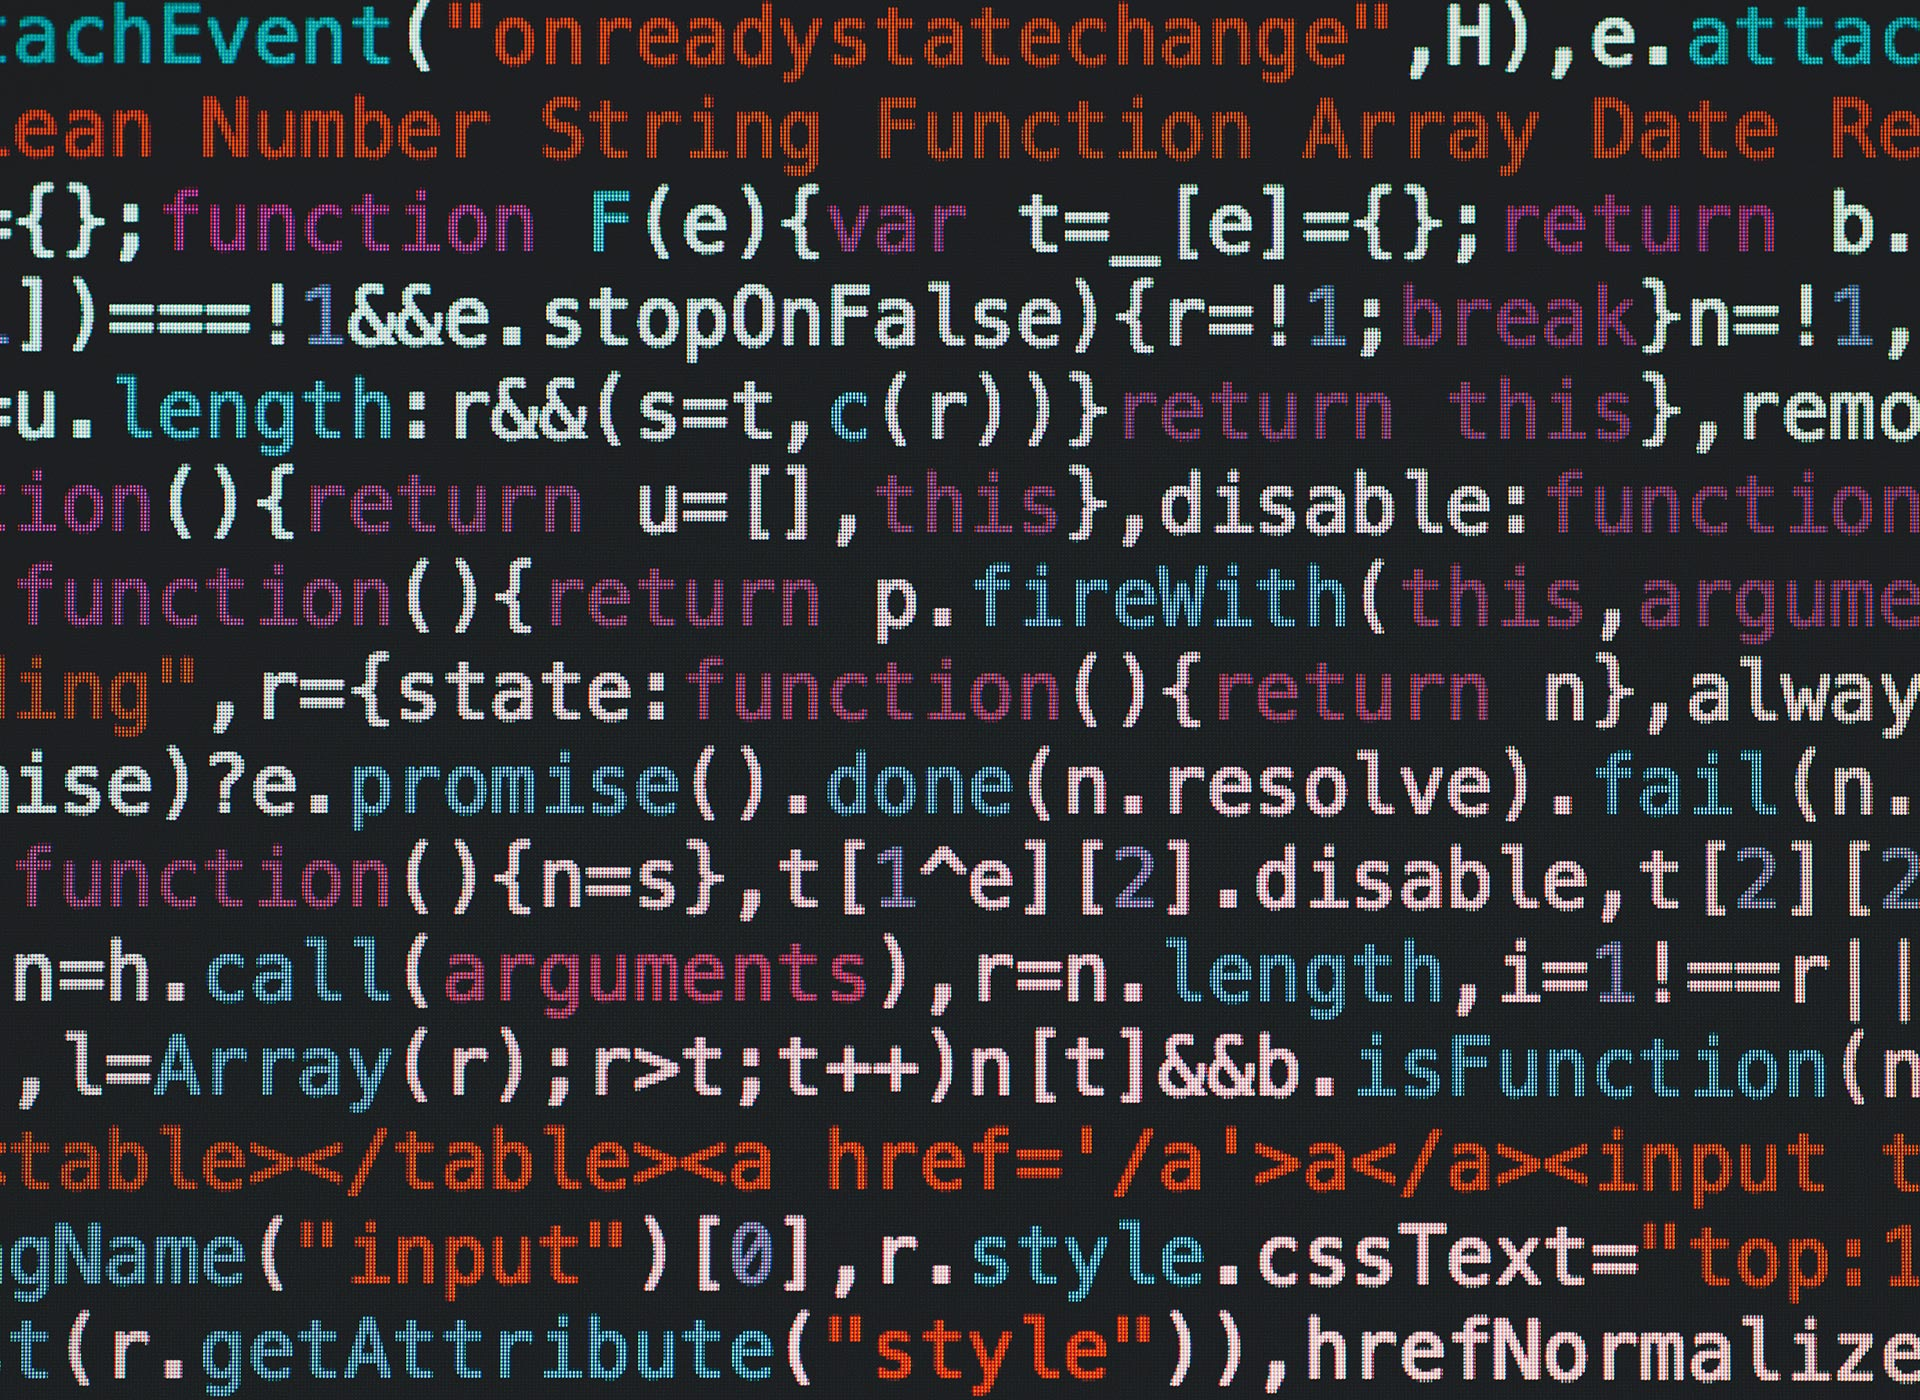 SonarSource acquires RIPS Technologies to elevate code security market